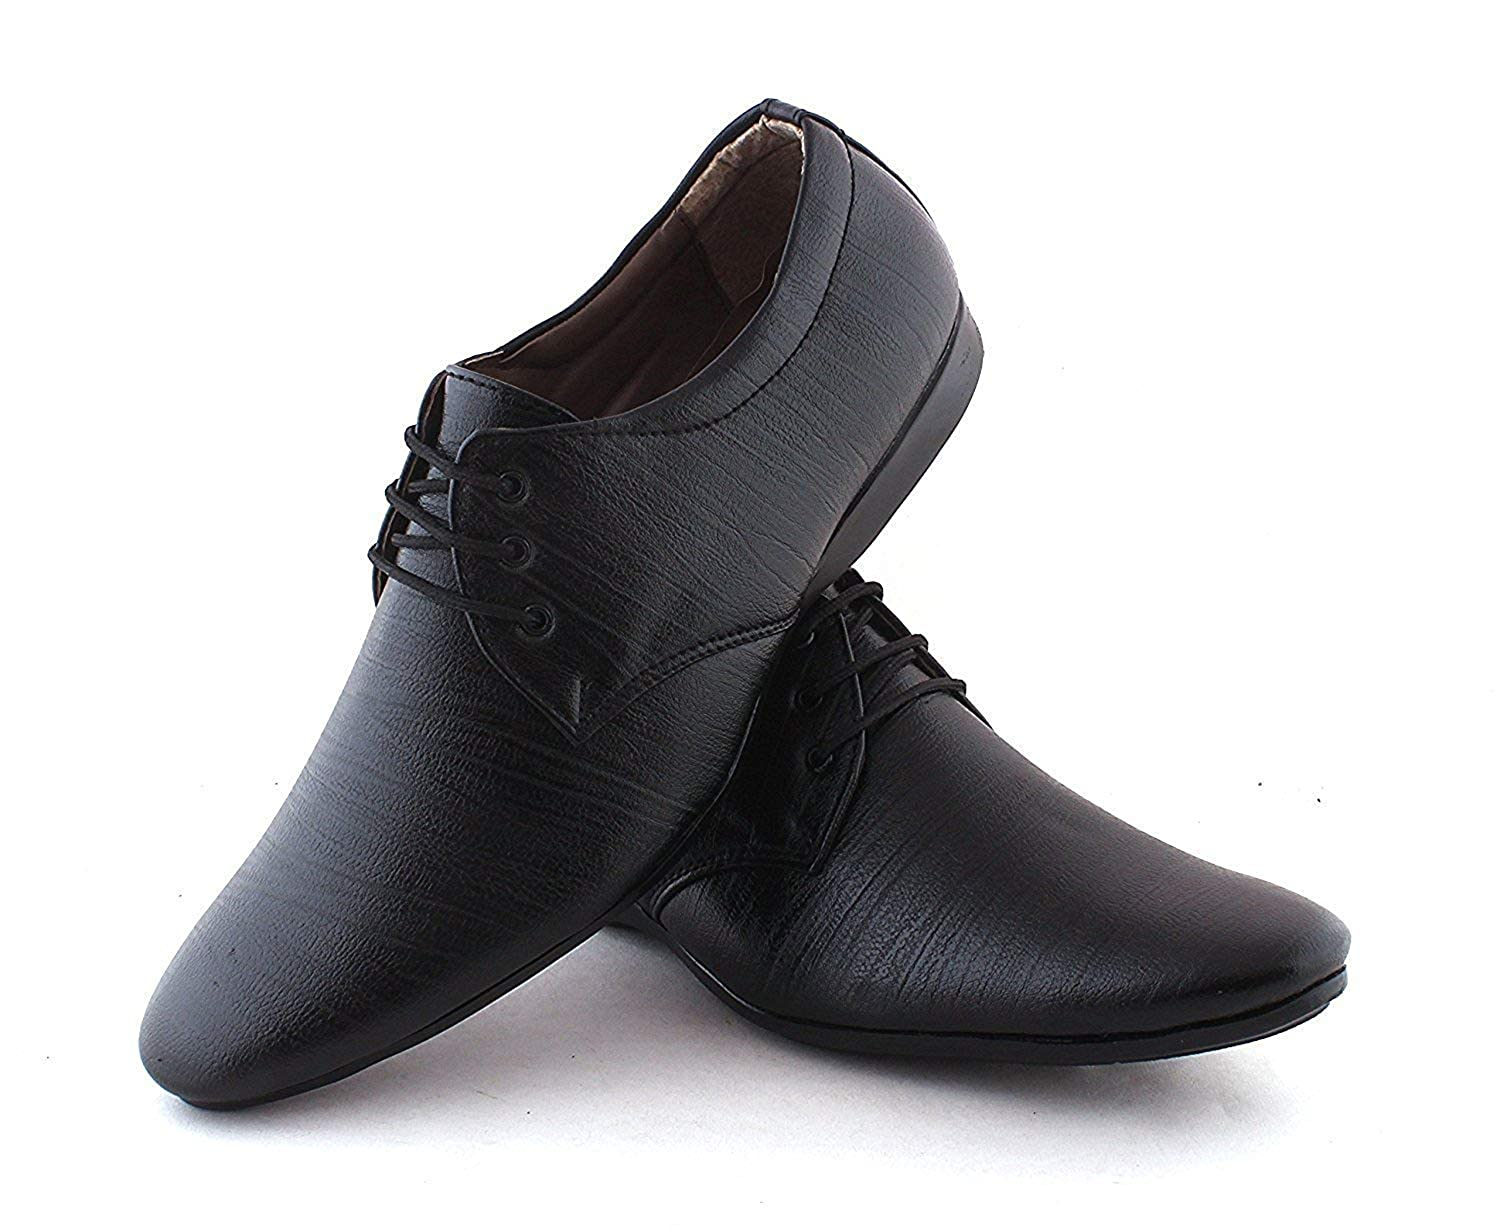 8ac85bea8f18 RJKART Leather Derby Patent Lace Up Formal Shoes for Men's Party Wear  Casual Shoes: Buy Online at Low Prices in India - Amazon.in